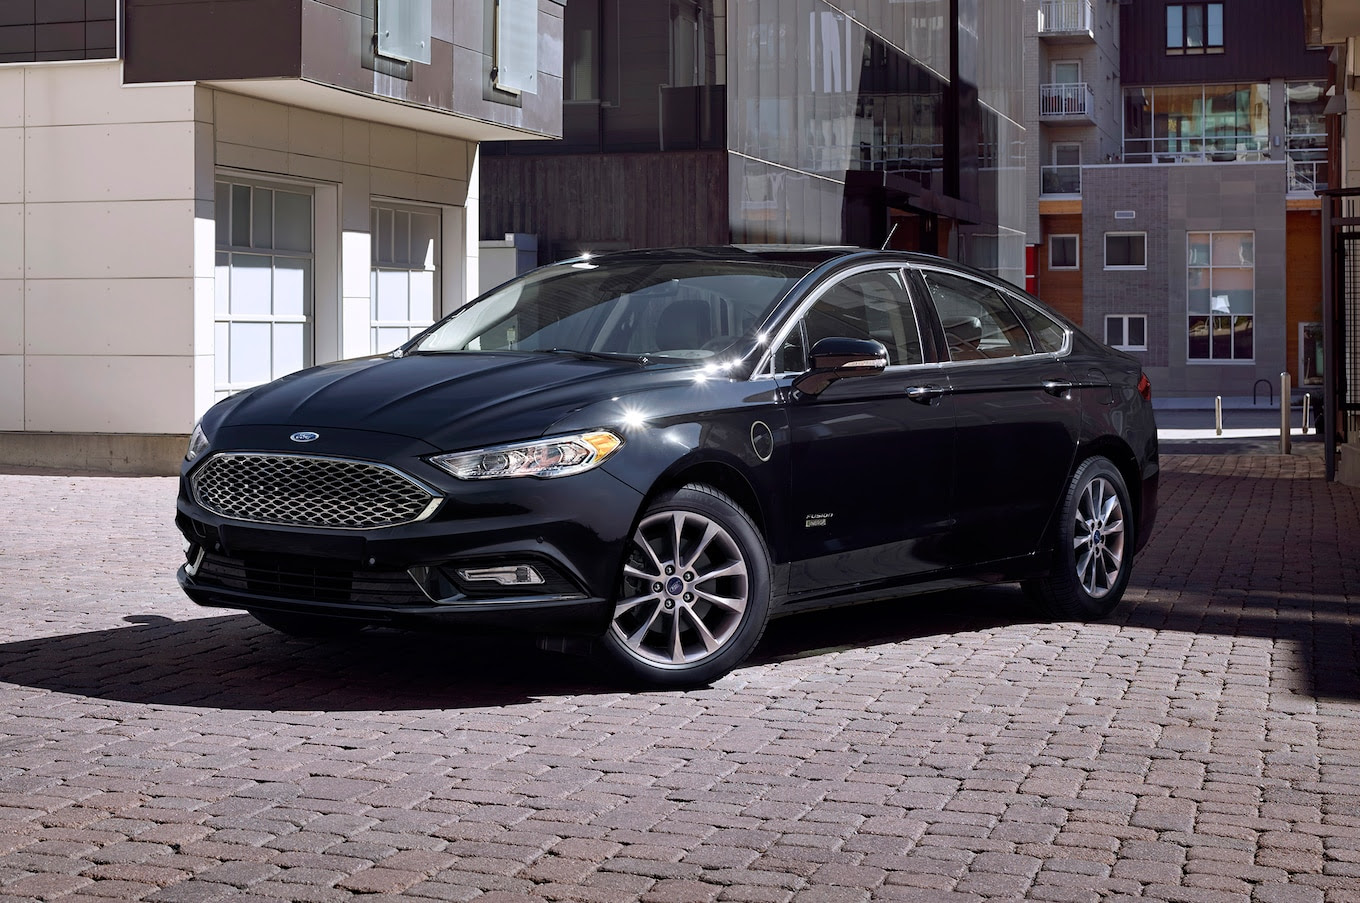 2017 Ford Fusion Review Top2016cars | 2017 - 2018 Best Car Reviews